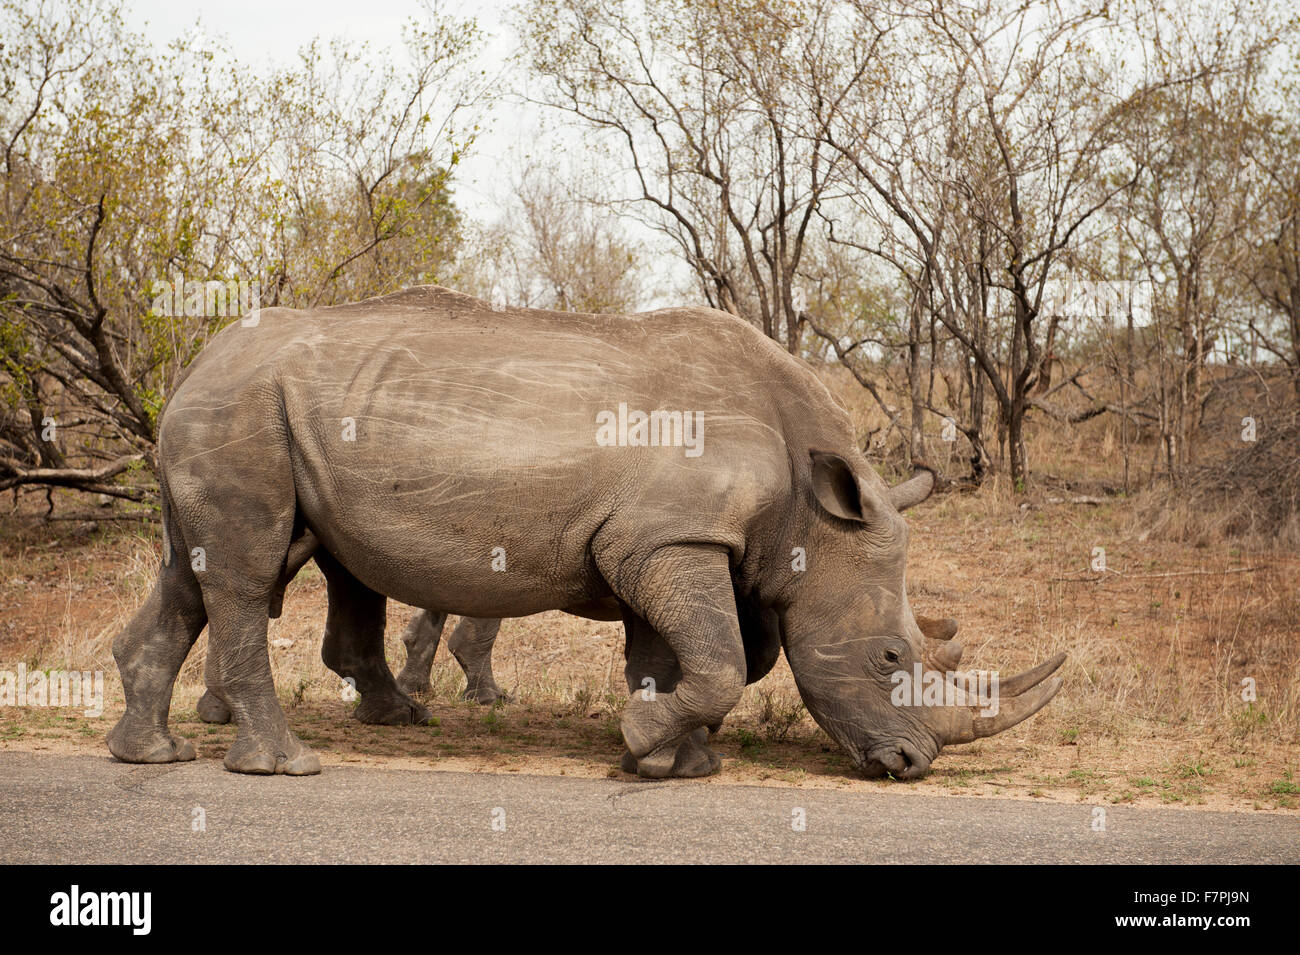 Rhinoceros graze by the side of the road in Kruger National Park, South Africa - Stock Image